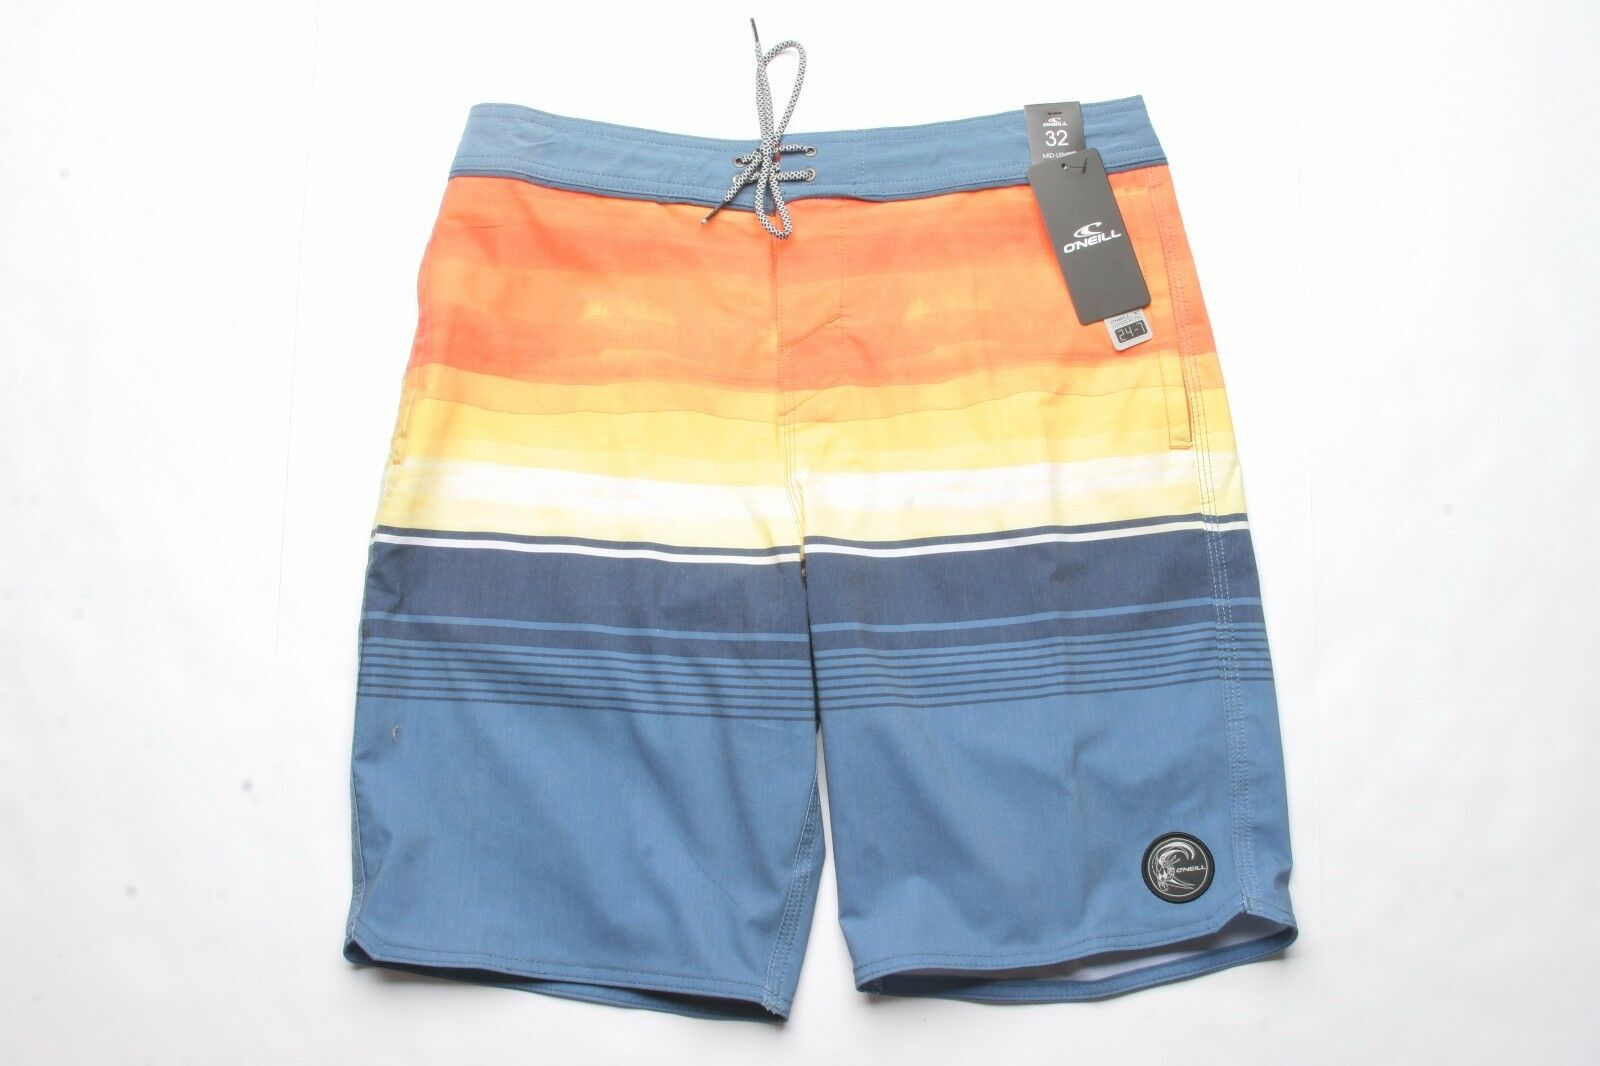 O'Neill Hyperfreak Source 24-7 Boardshort (32) Dark bluee